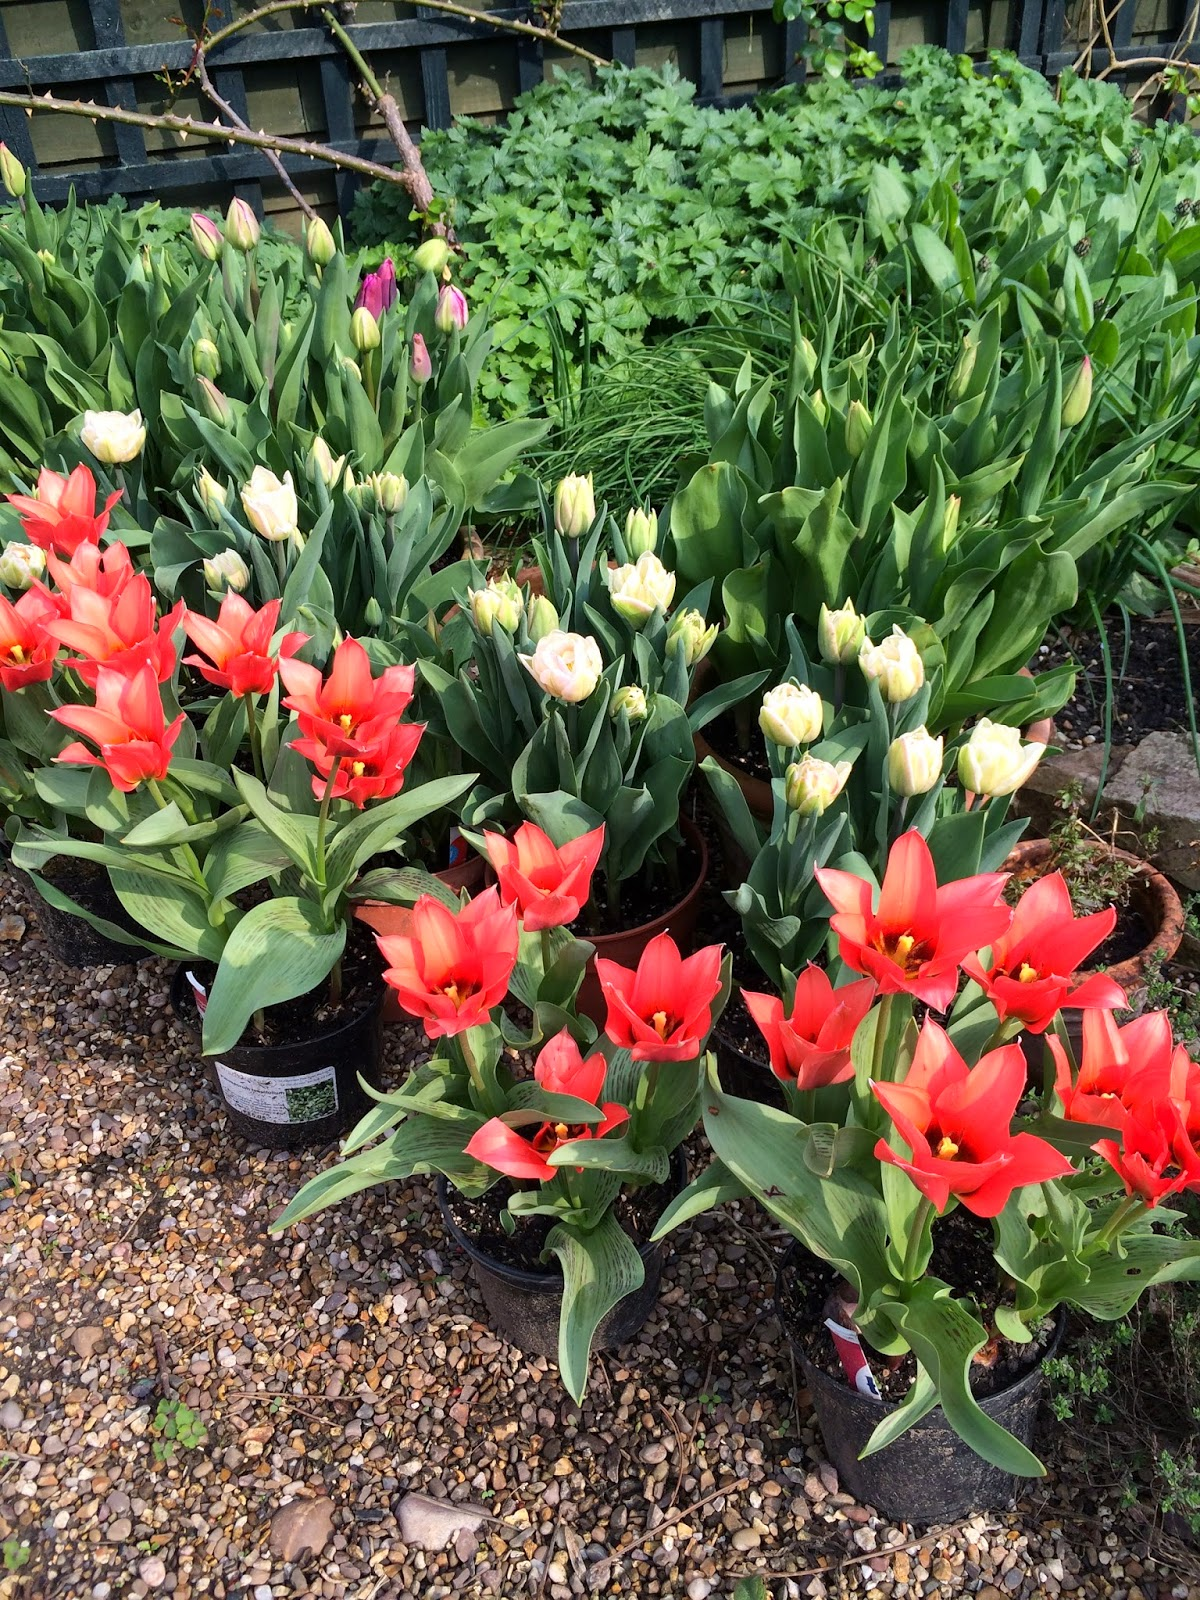 Tulips grow well in containers too